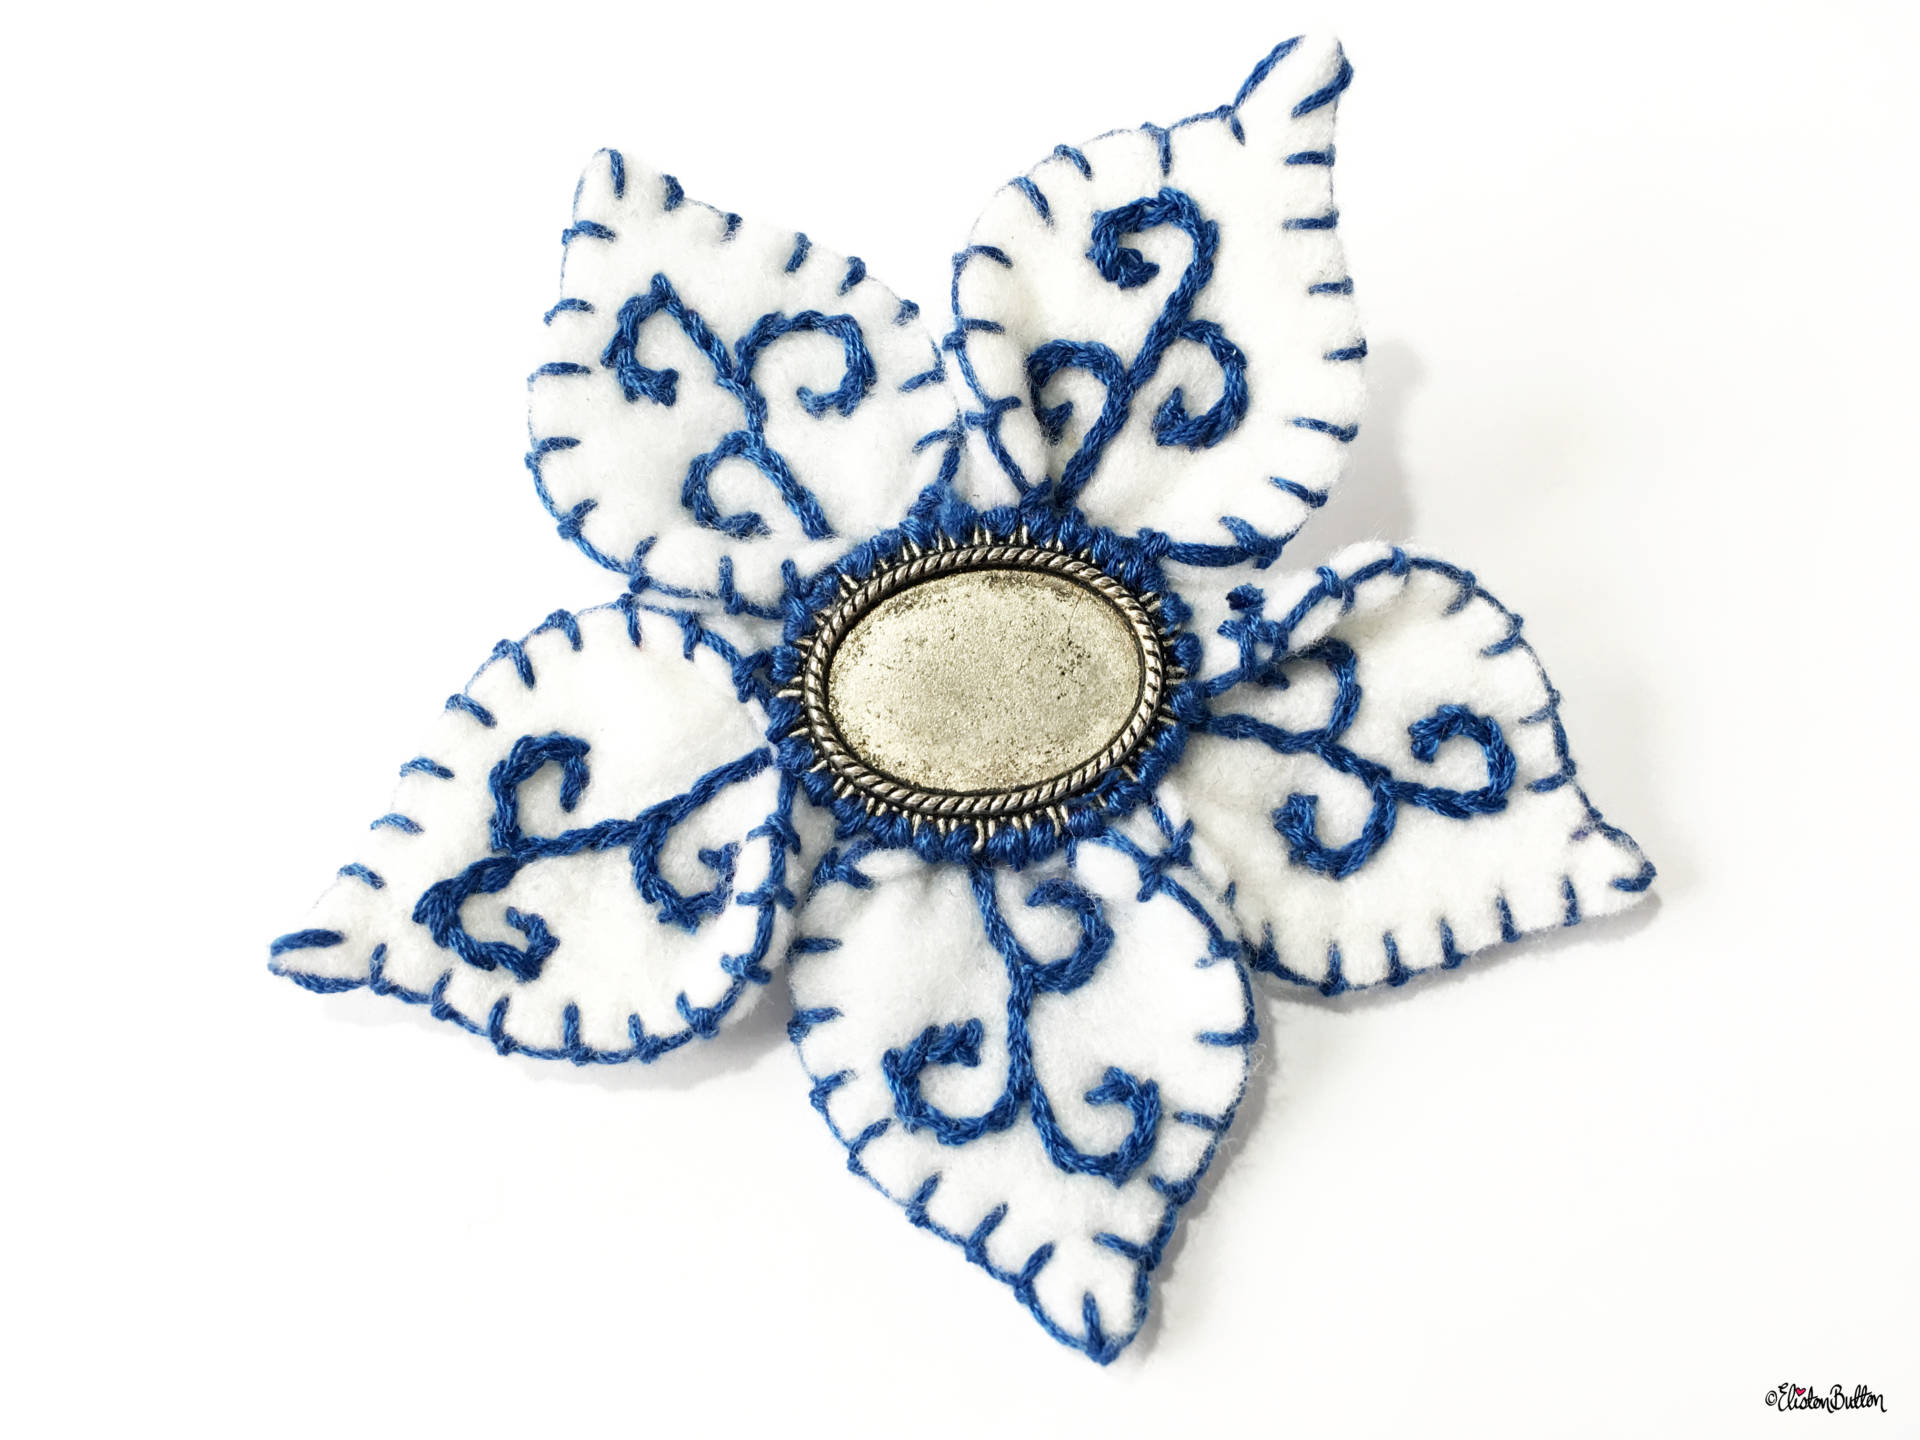 Blue and White Embroidered Felt Flower Brooch by Eliston Button - Create 30 - No. 14 - Blue and White Embroidered Felt Flower Brooch at www.elistonbutton.com - Eliston Button - That Crafty Kid – Art, Design, Craft & Adventure.